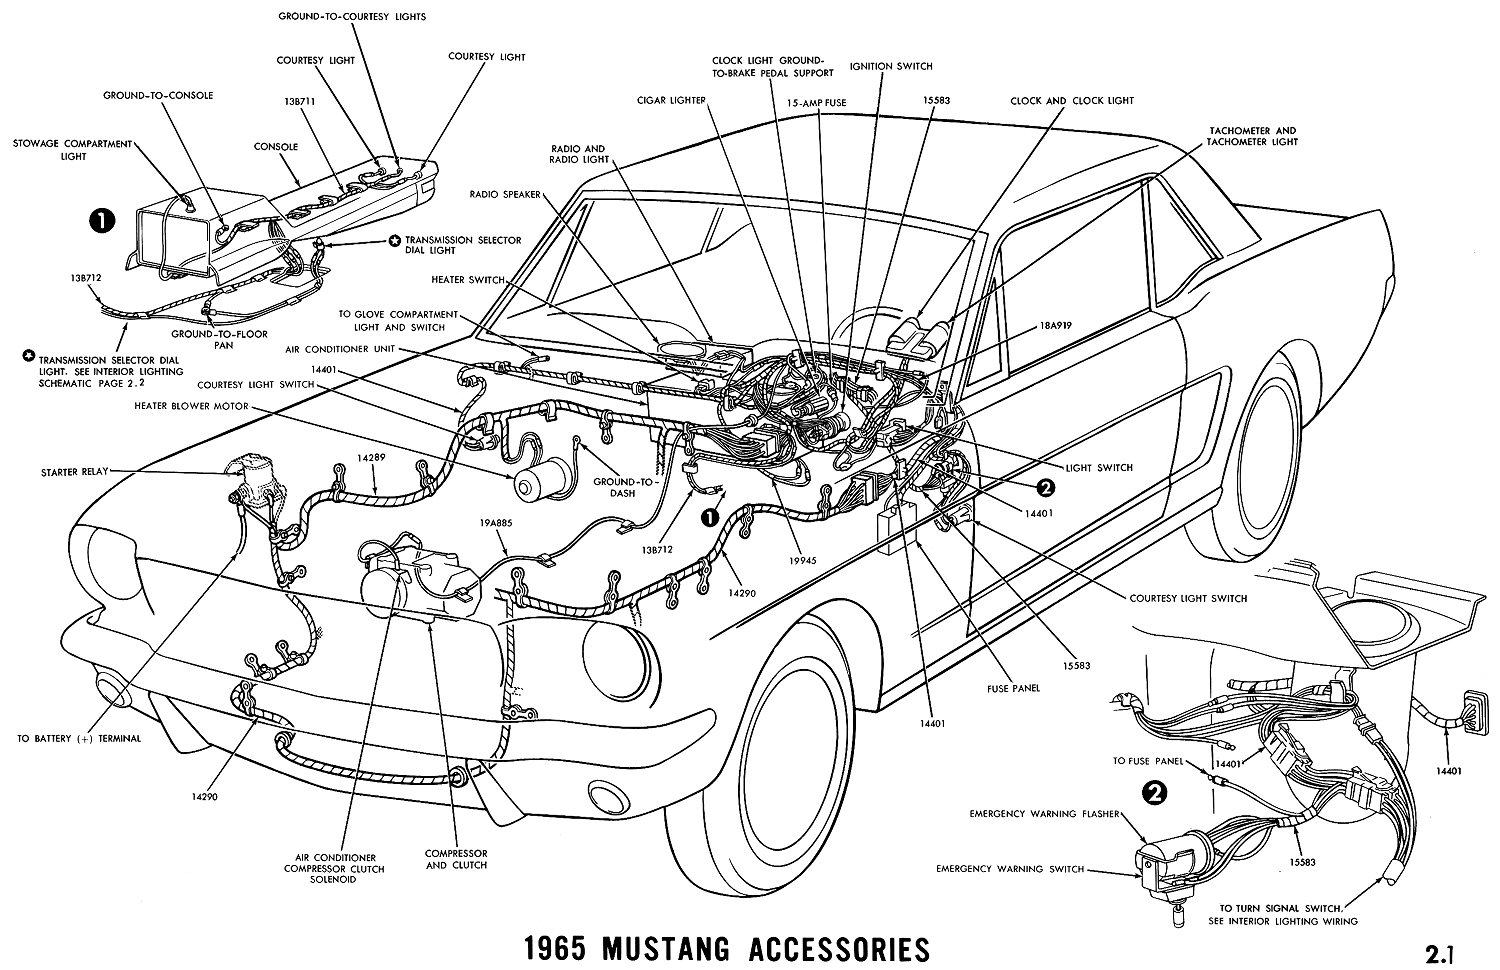 mustang wiring diagrams average joe restoration 1965 mustang accessories pictorial or schematic